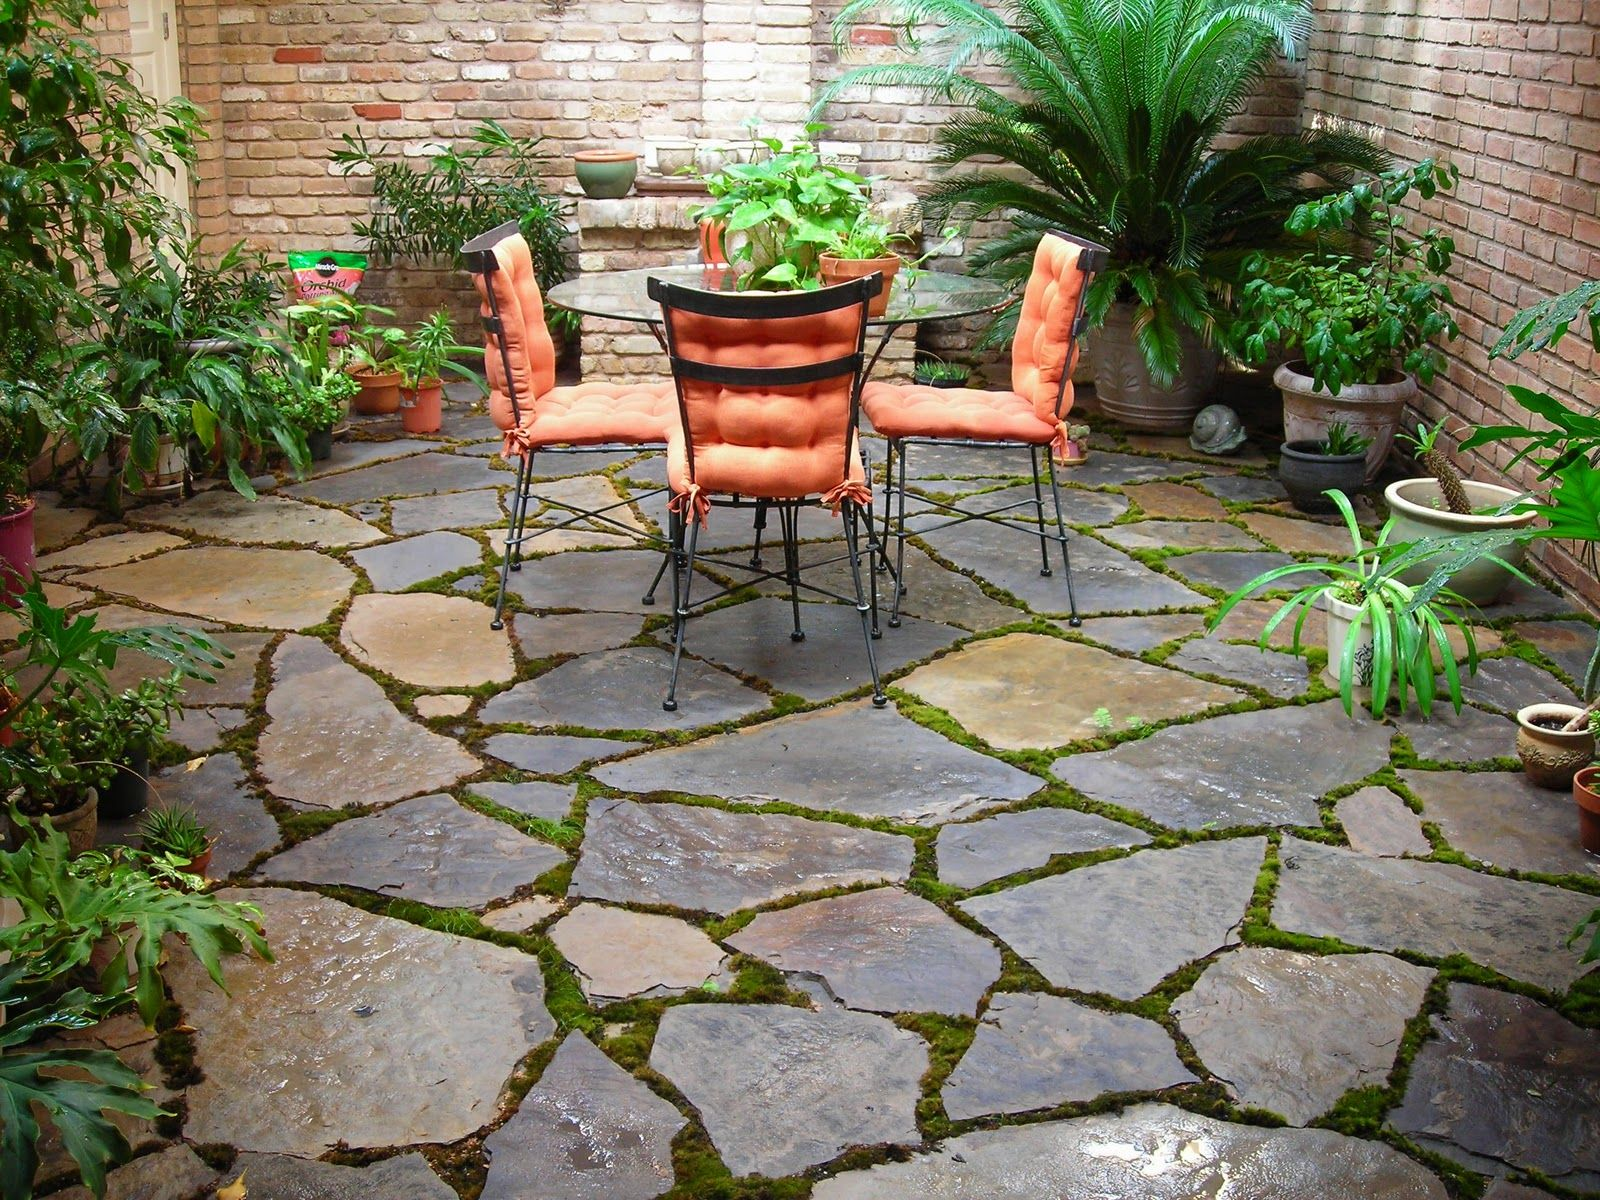 Awesome Best Stone Patio Ideas For Your Backyard Letu0027s Face It, A Stone Patio Is A  Lot More Interesting And Appealing, It Makes Your Backyard Area More  Rewarding ...